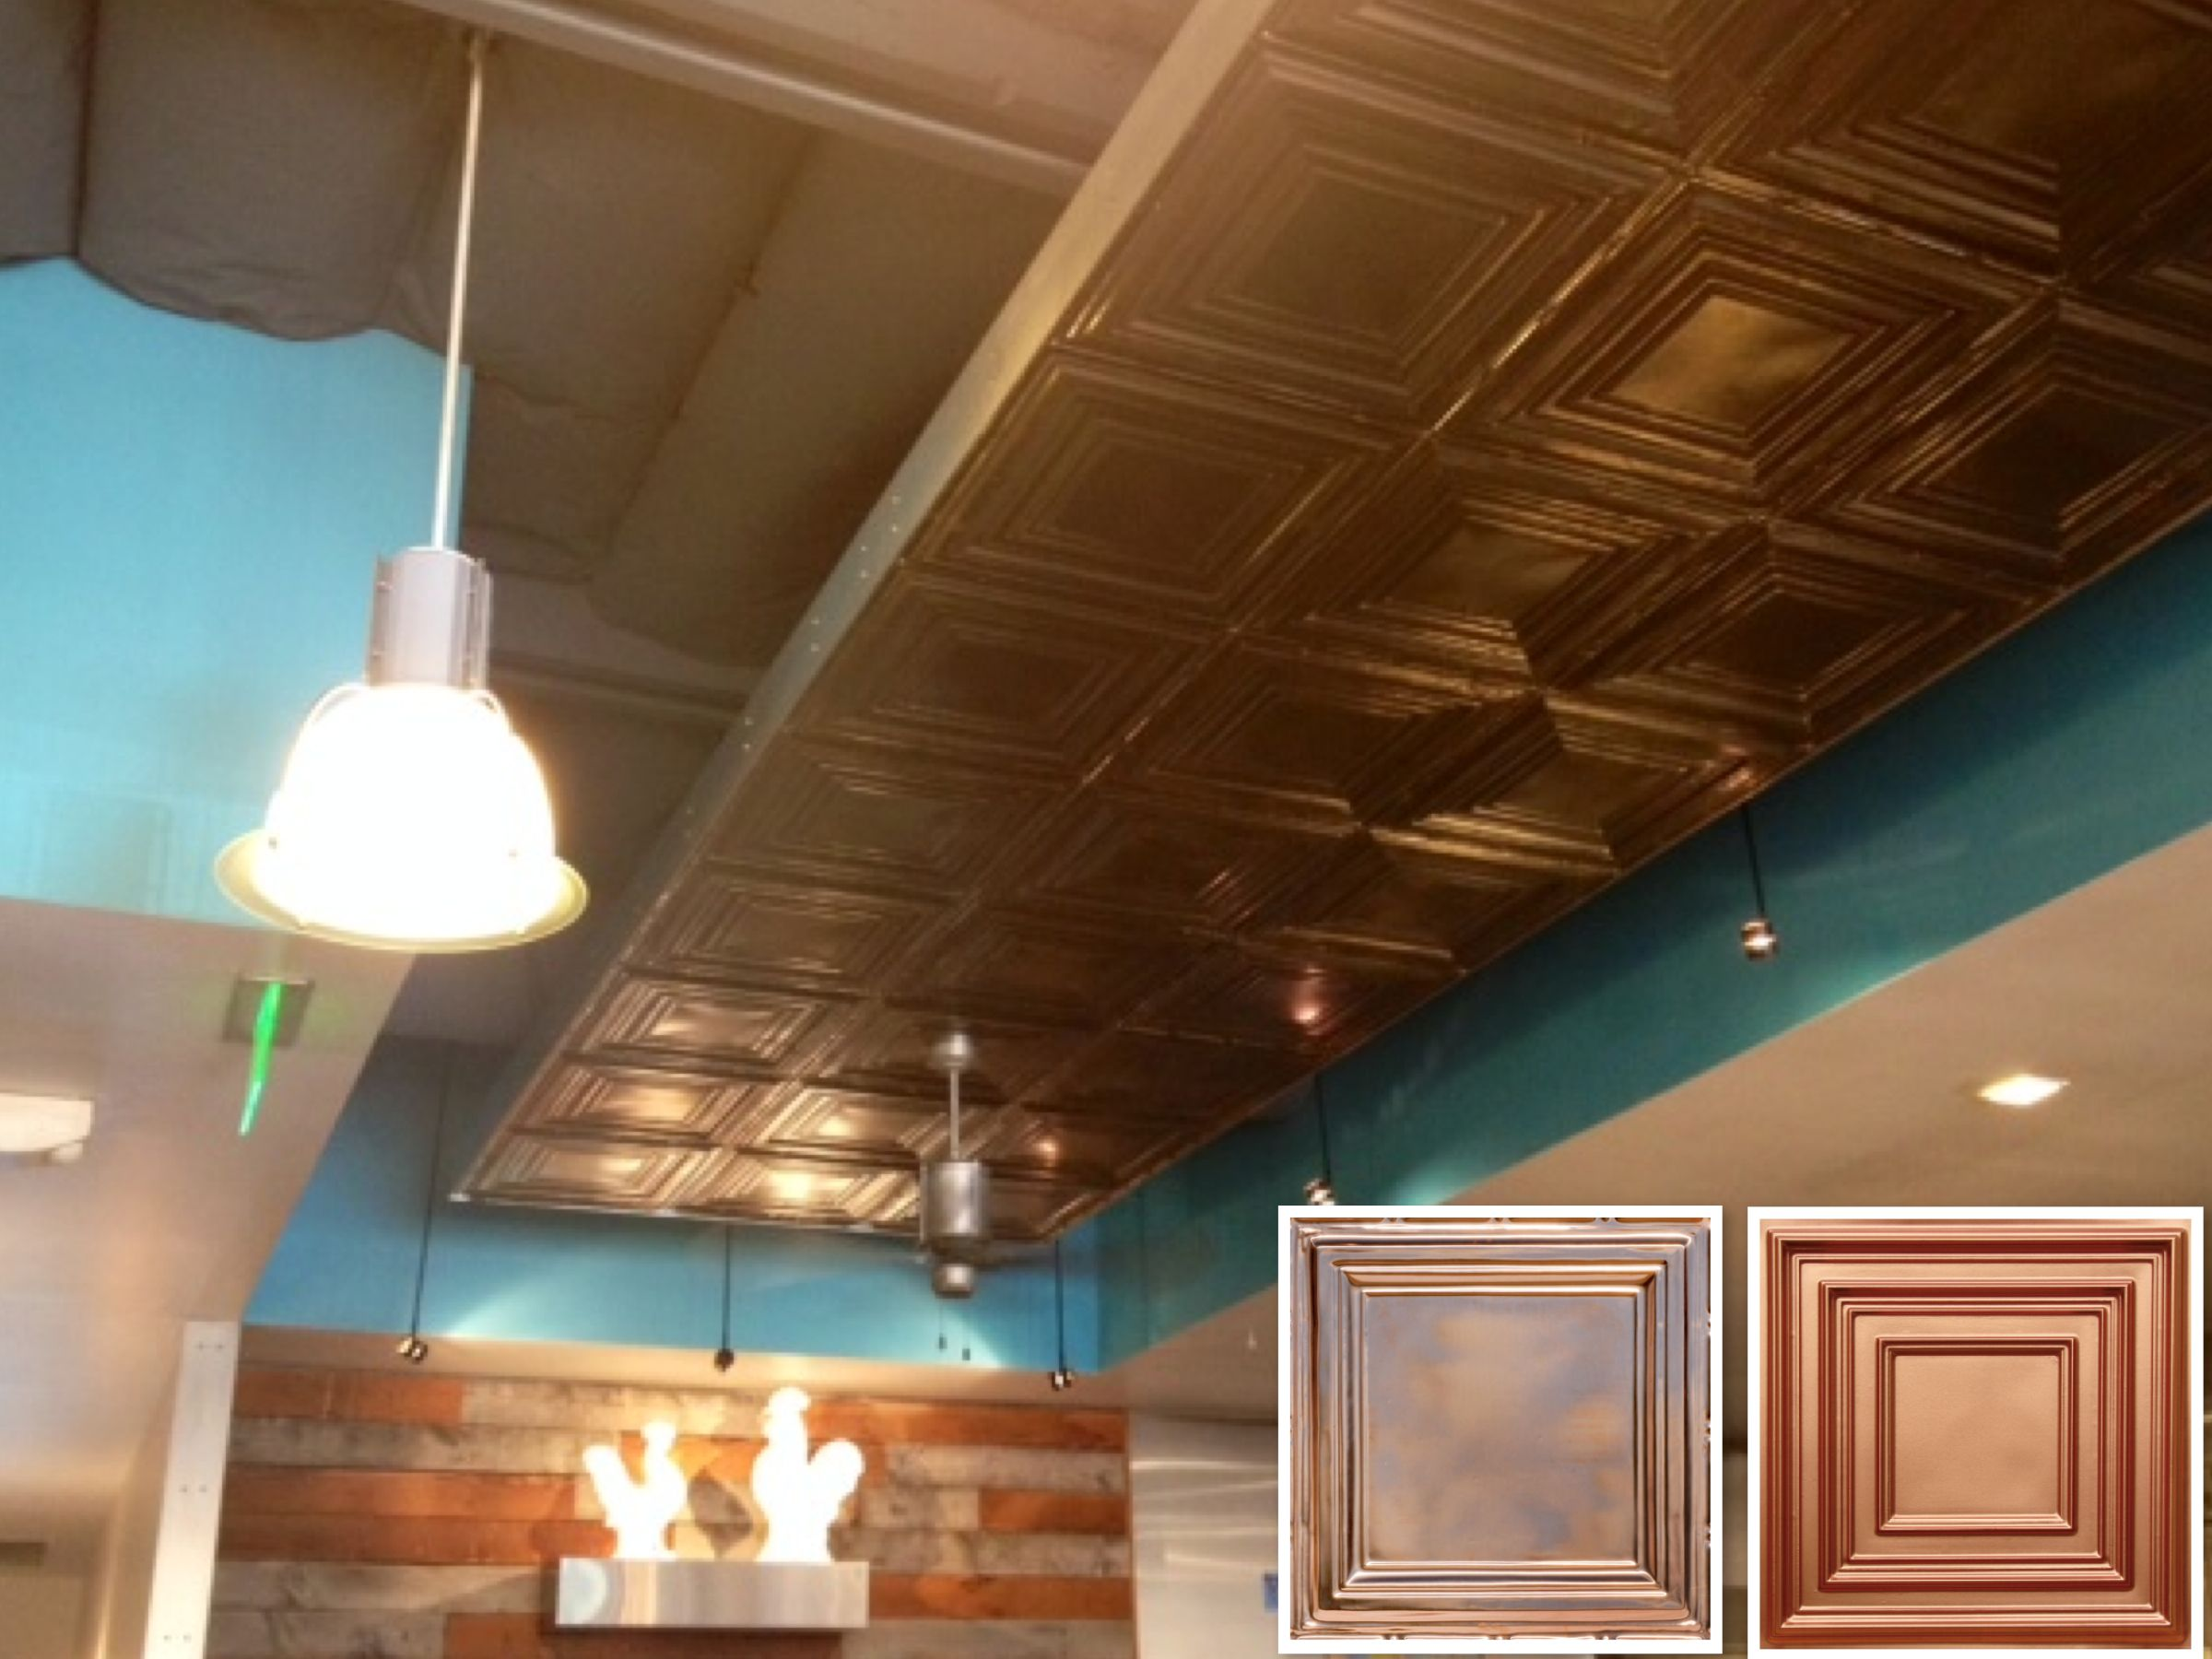 Restaurant ceiling decor inspiration mendocino farms marina del no need to tile the entire ceiling instead create a copper tiled accent ceiling like the one at this iconic los angeles sandwich eatery doublecrazyfo Gallery